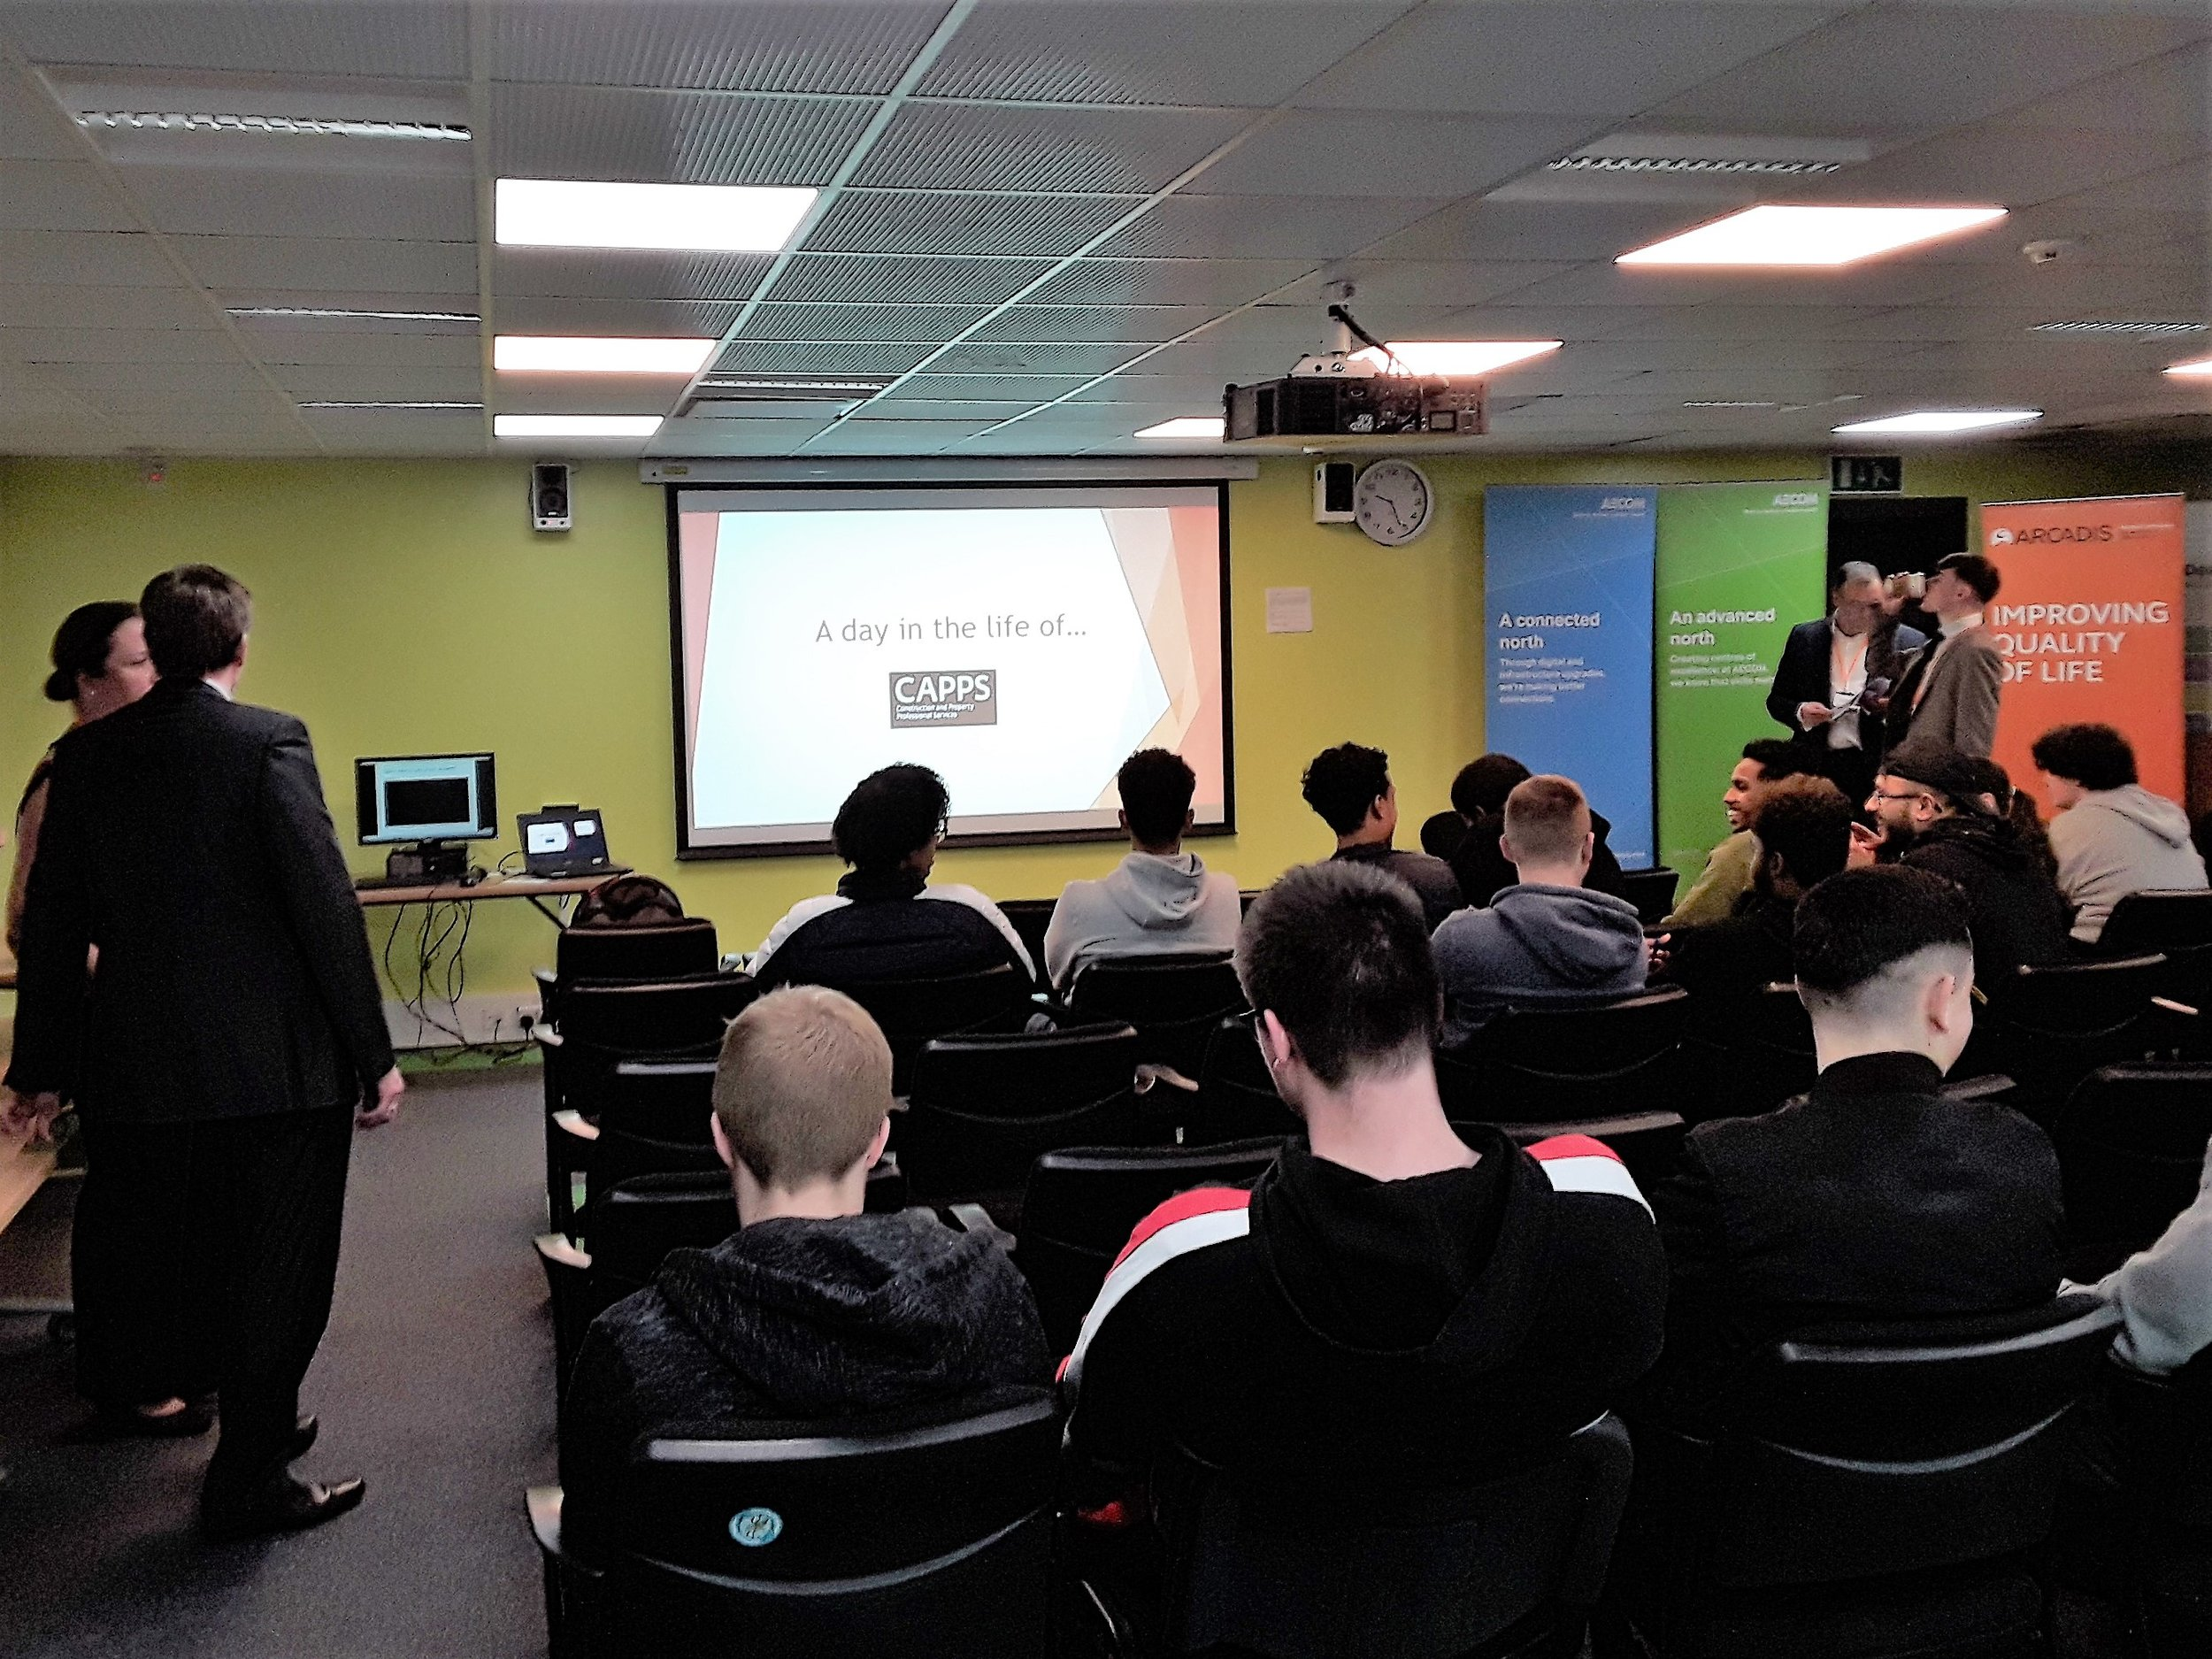 The Manchester College: A day in the life of... - Thank you to the CAPPS consultants who presented at the day in the life of event today at Manchester College.Hilary Orr, Manchester College (Employability & Partnership Co-ordinator)